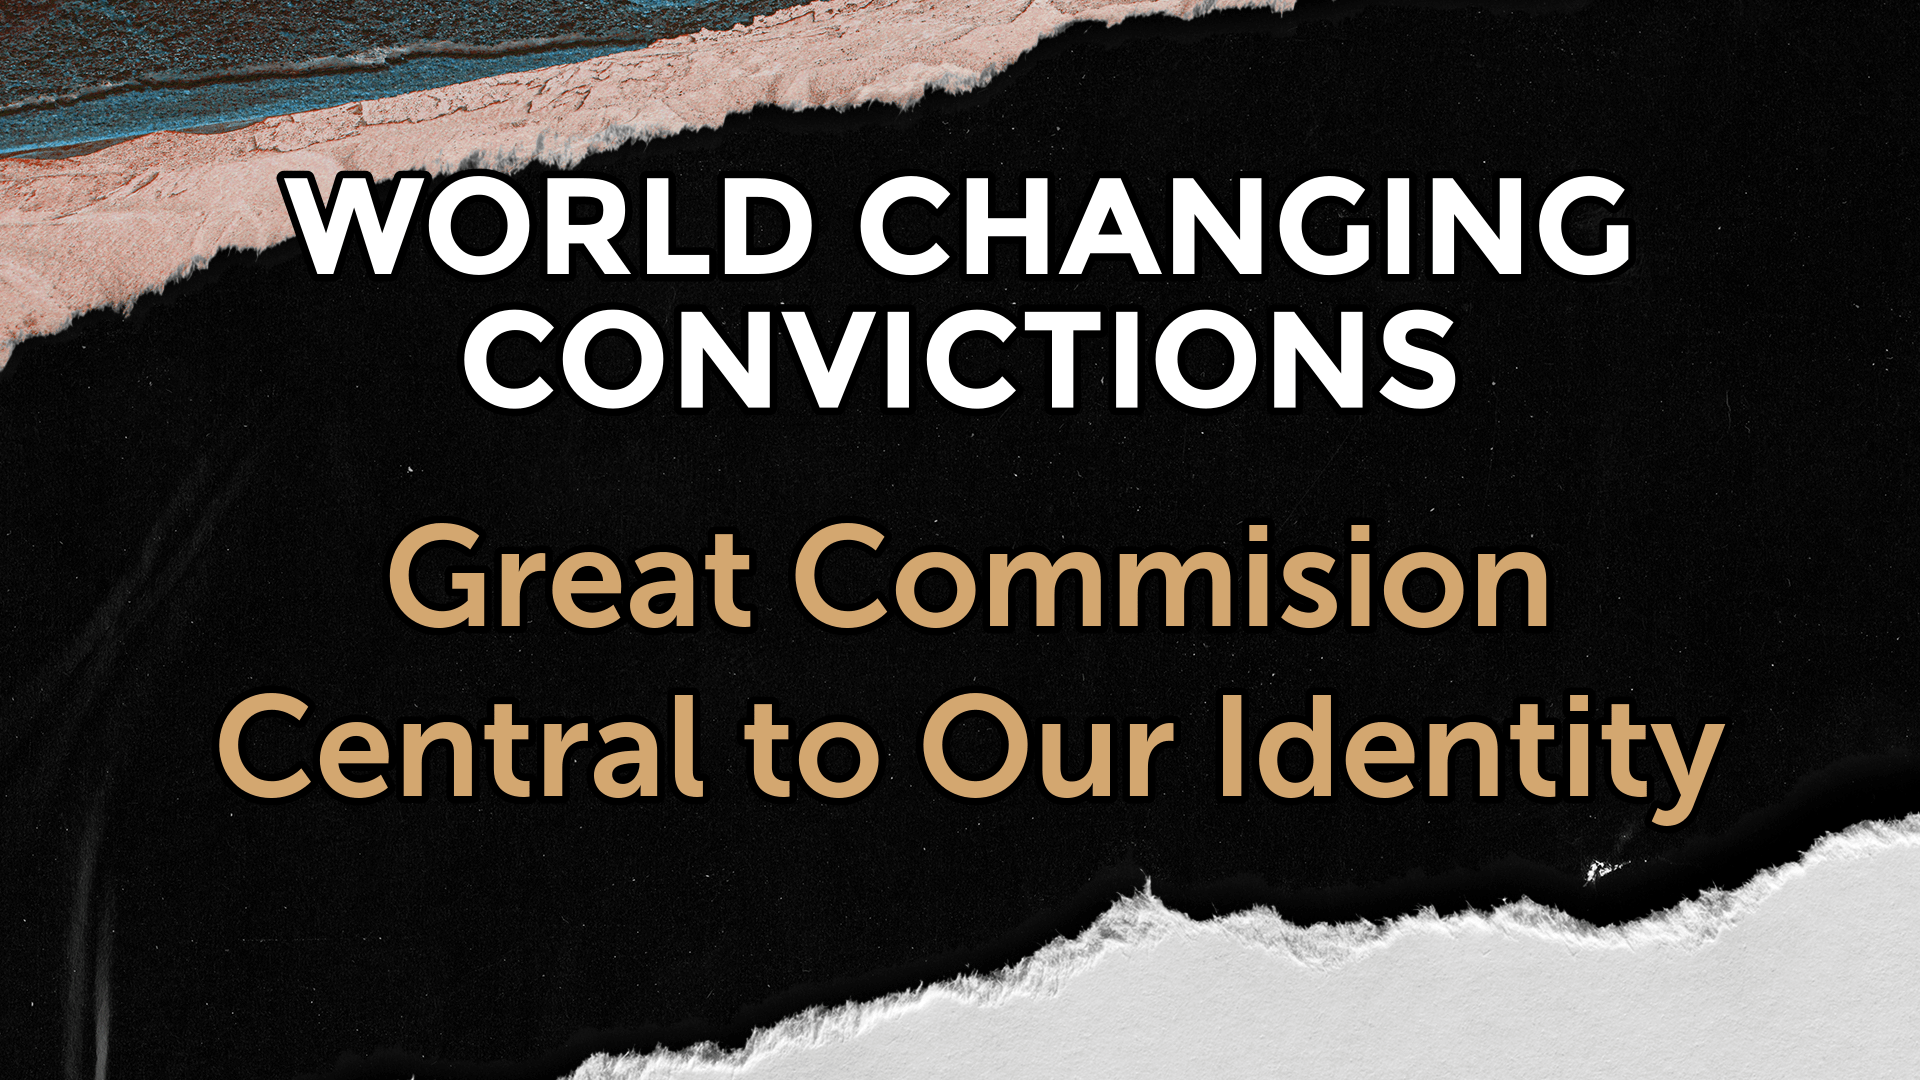 World Changing Convictions